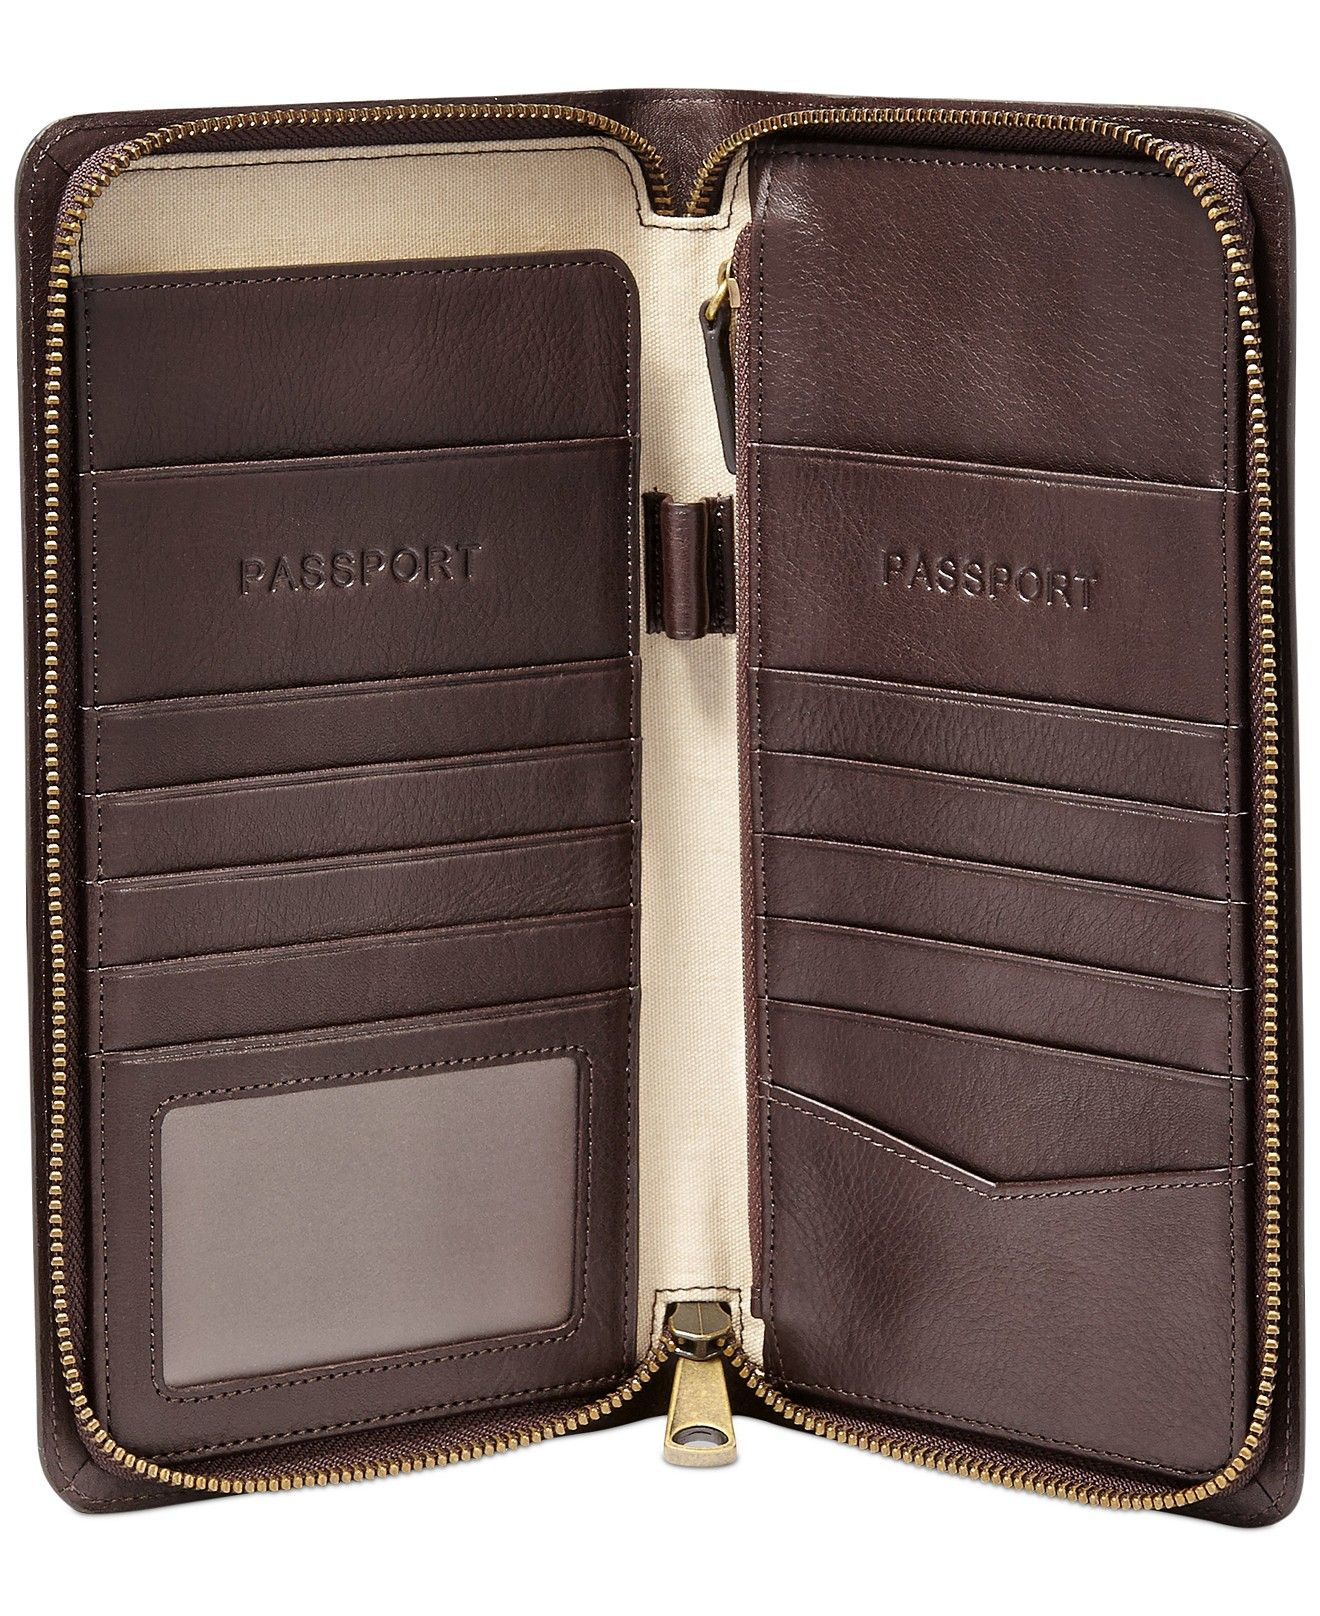 Fossil Multi-Zip Leather Passport Case - Accessories & Wallets - Men -  Macy's